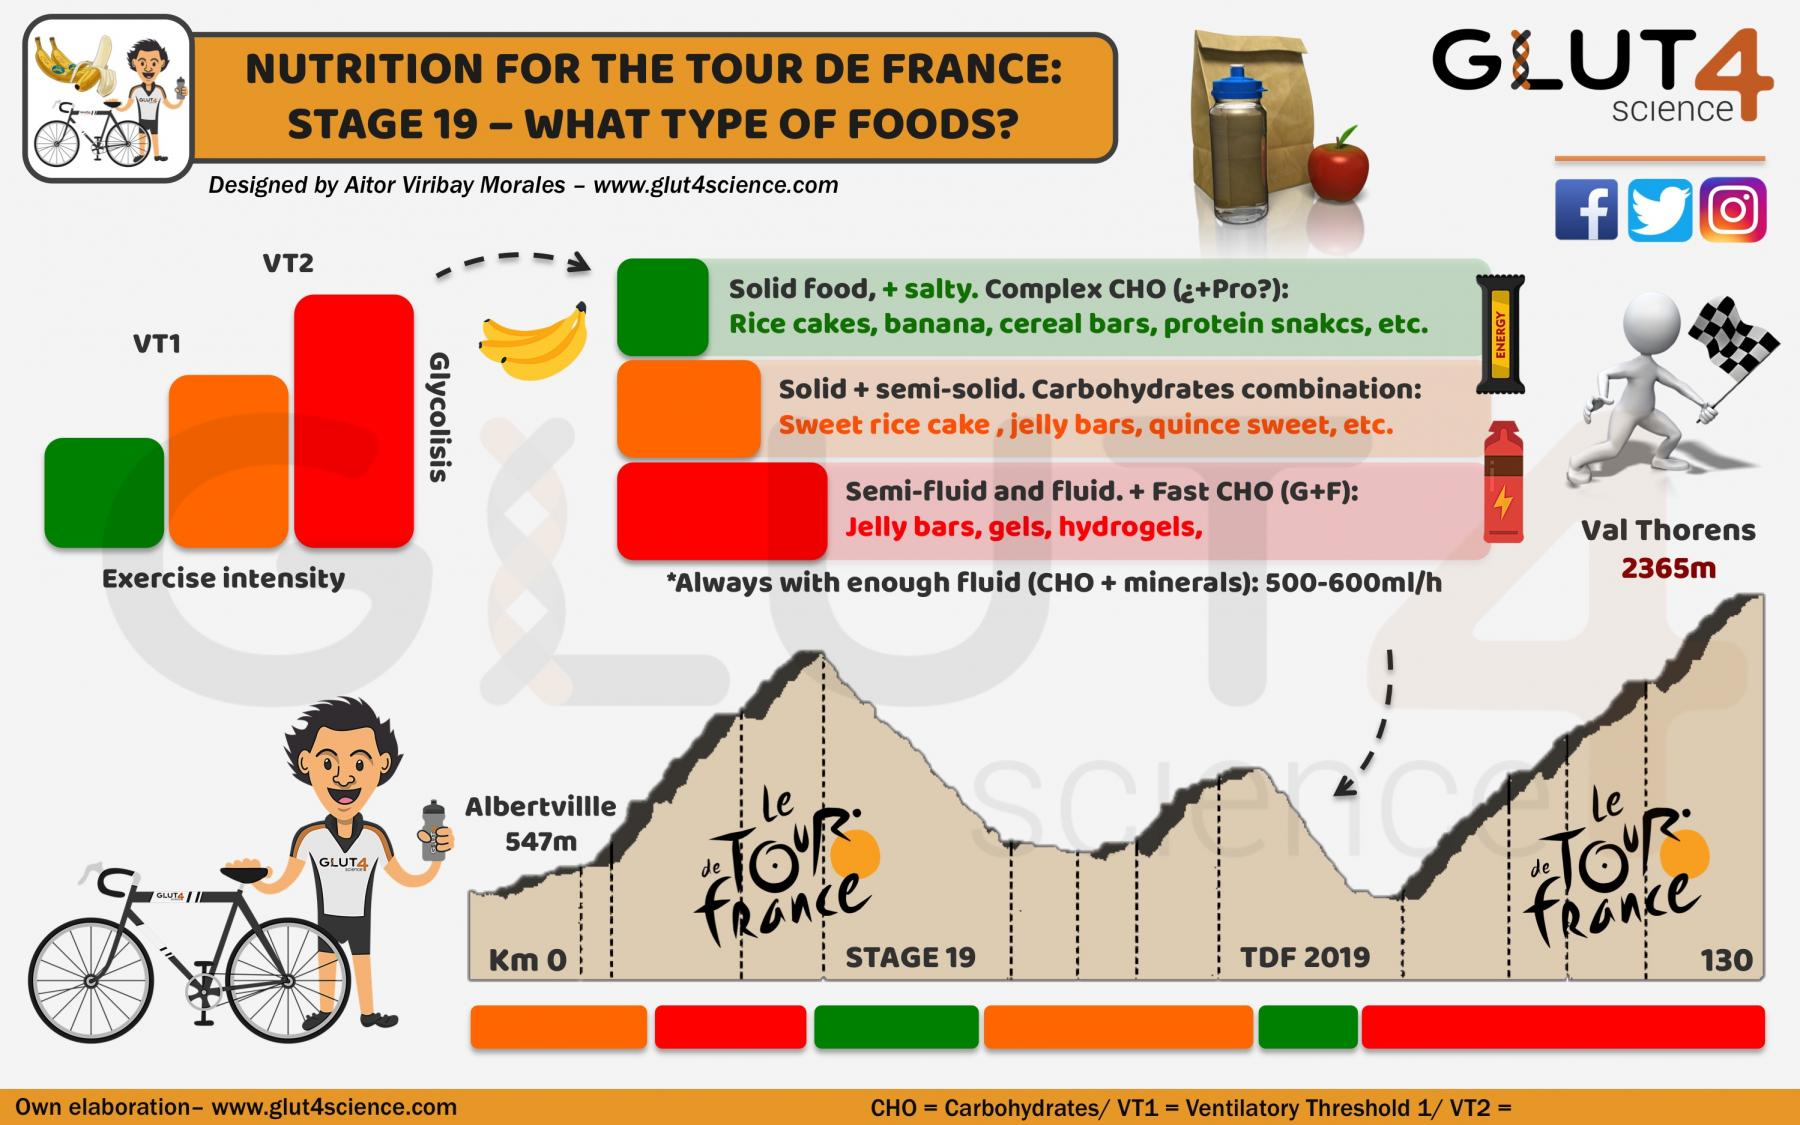 Nutrition for the Tour de France: Type of foods